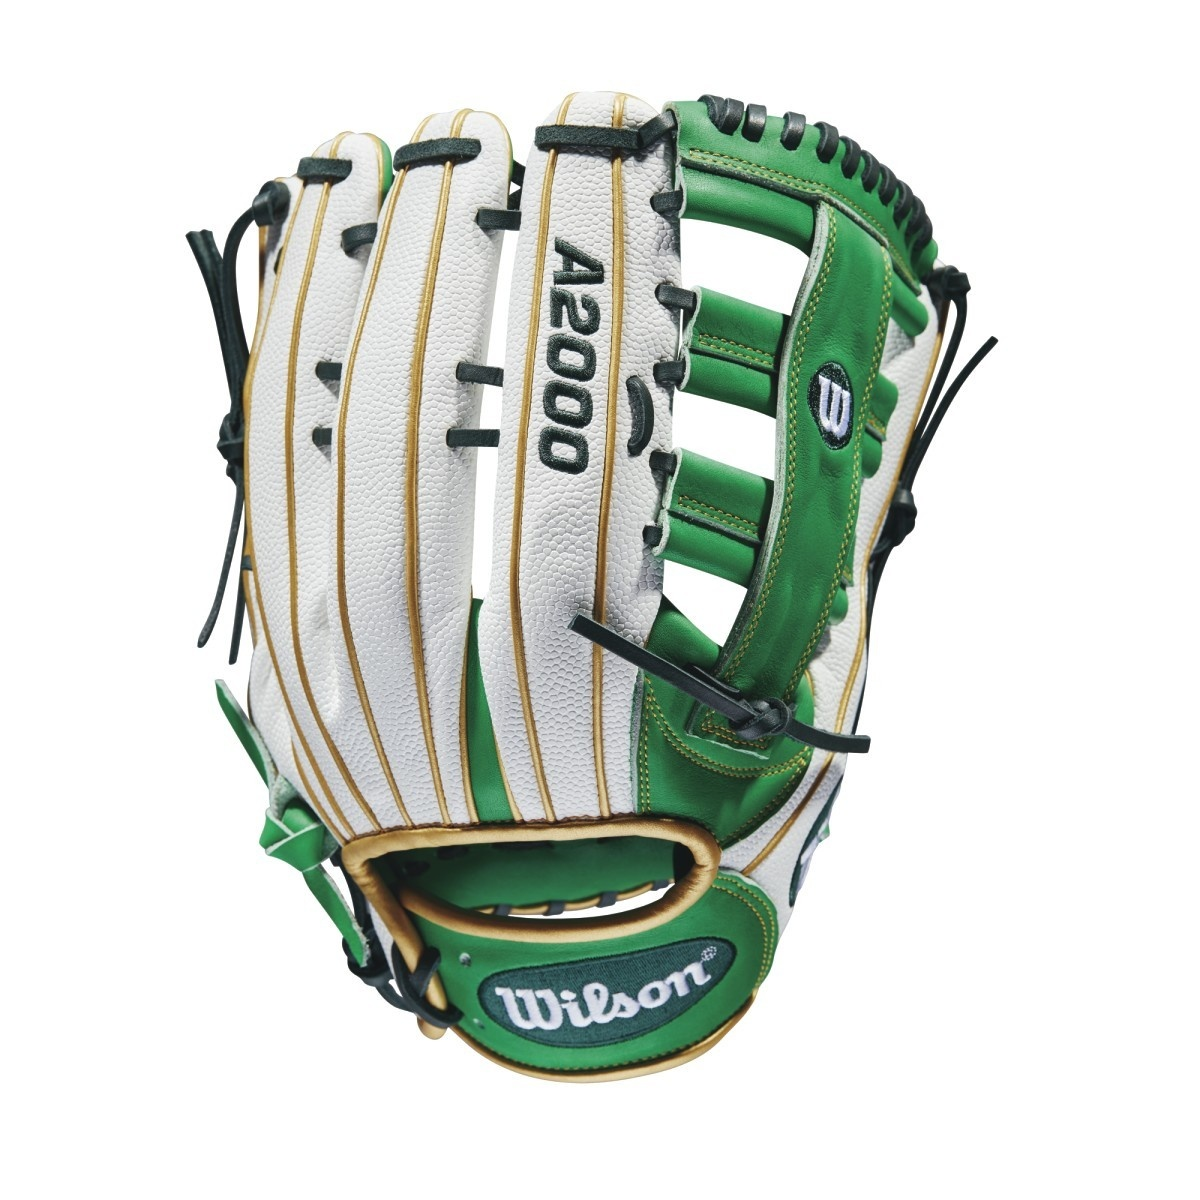 SP13 SLOW PITCH PATTERN A2000 GLOVE - MARCH 2017